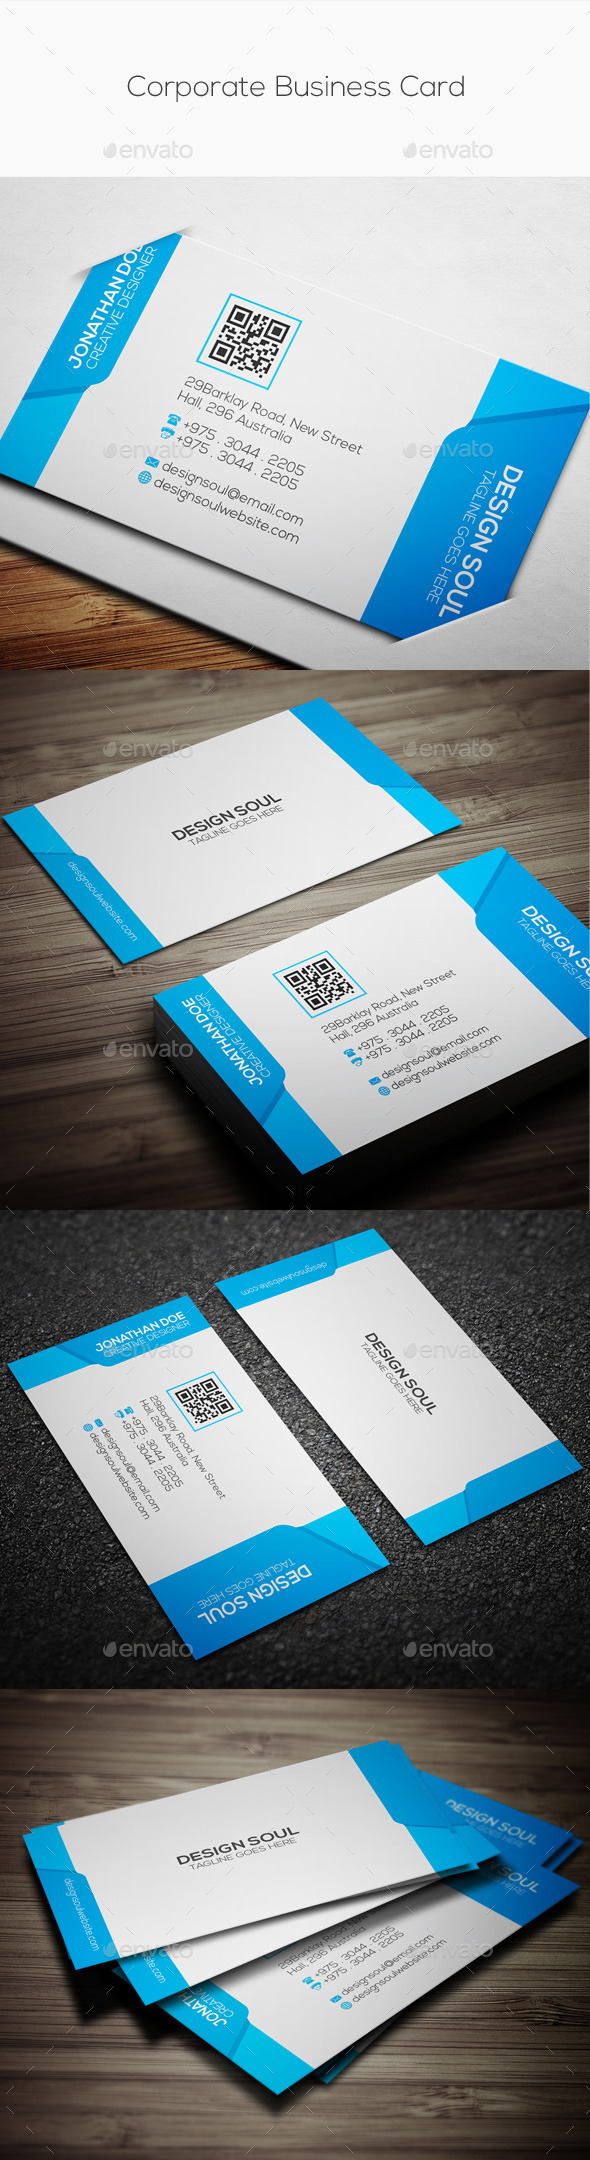 GraphicRiver Corporate Business Card 10032487